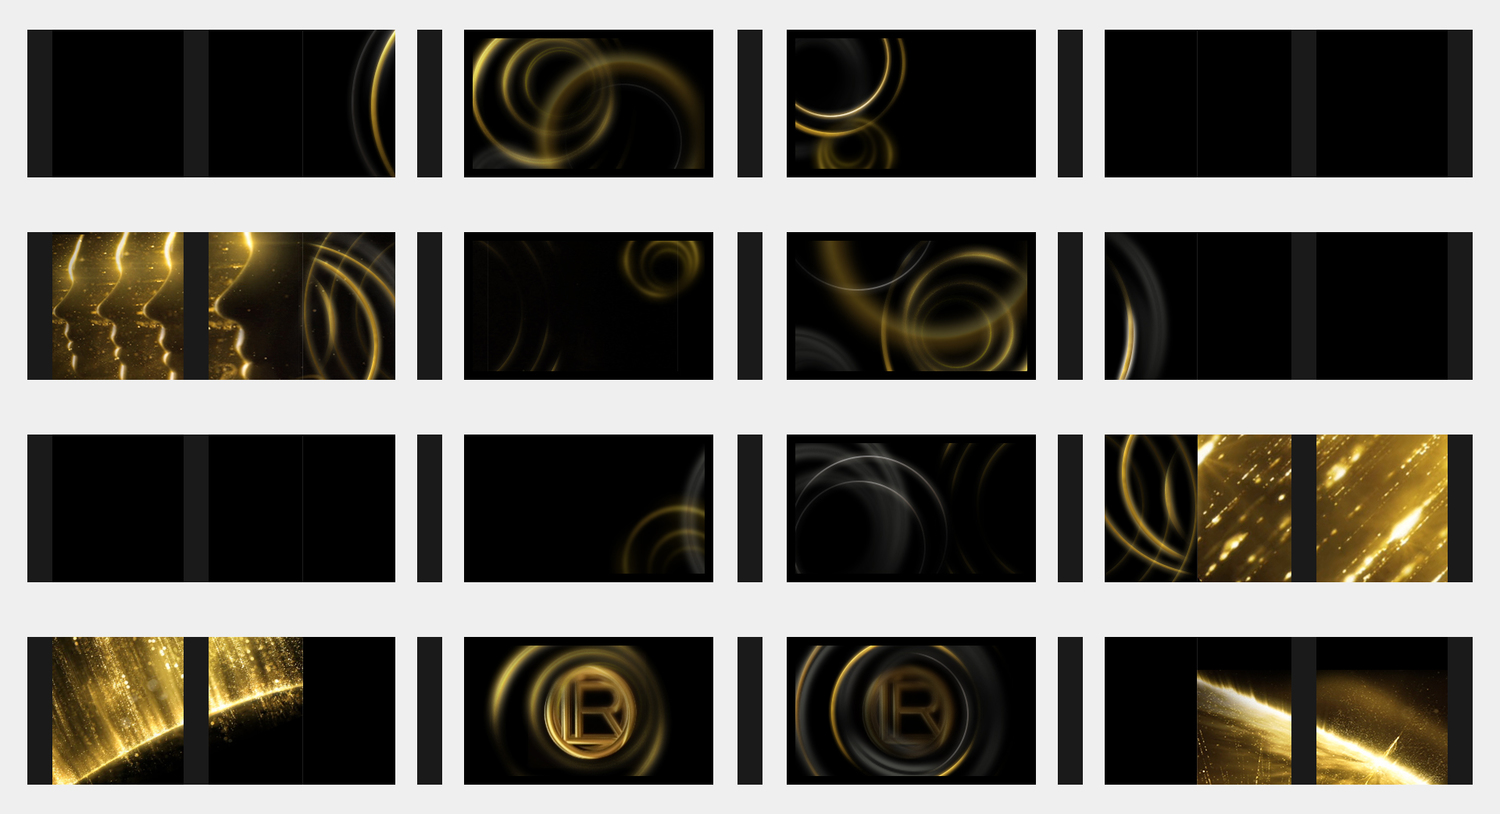 These were a series of test framescreated with the screen layout in mind. This was a process of eliminationas much as an exploration. We had to see what footage worked well together.